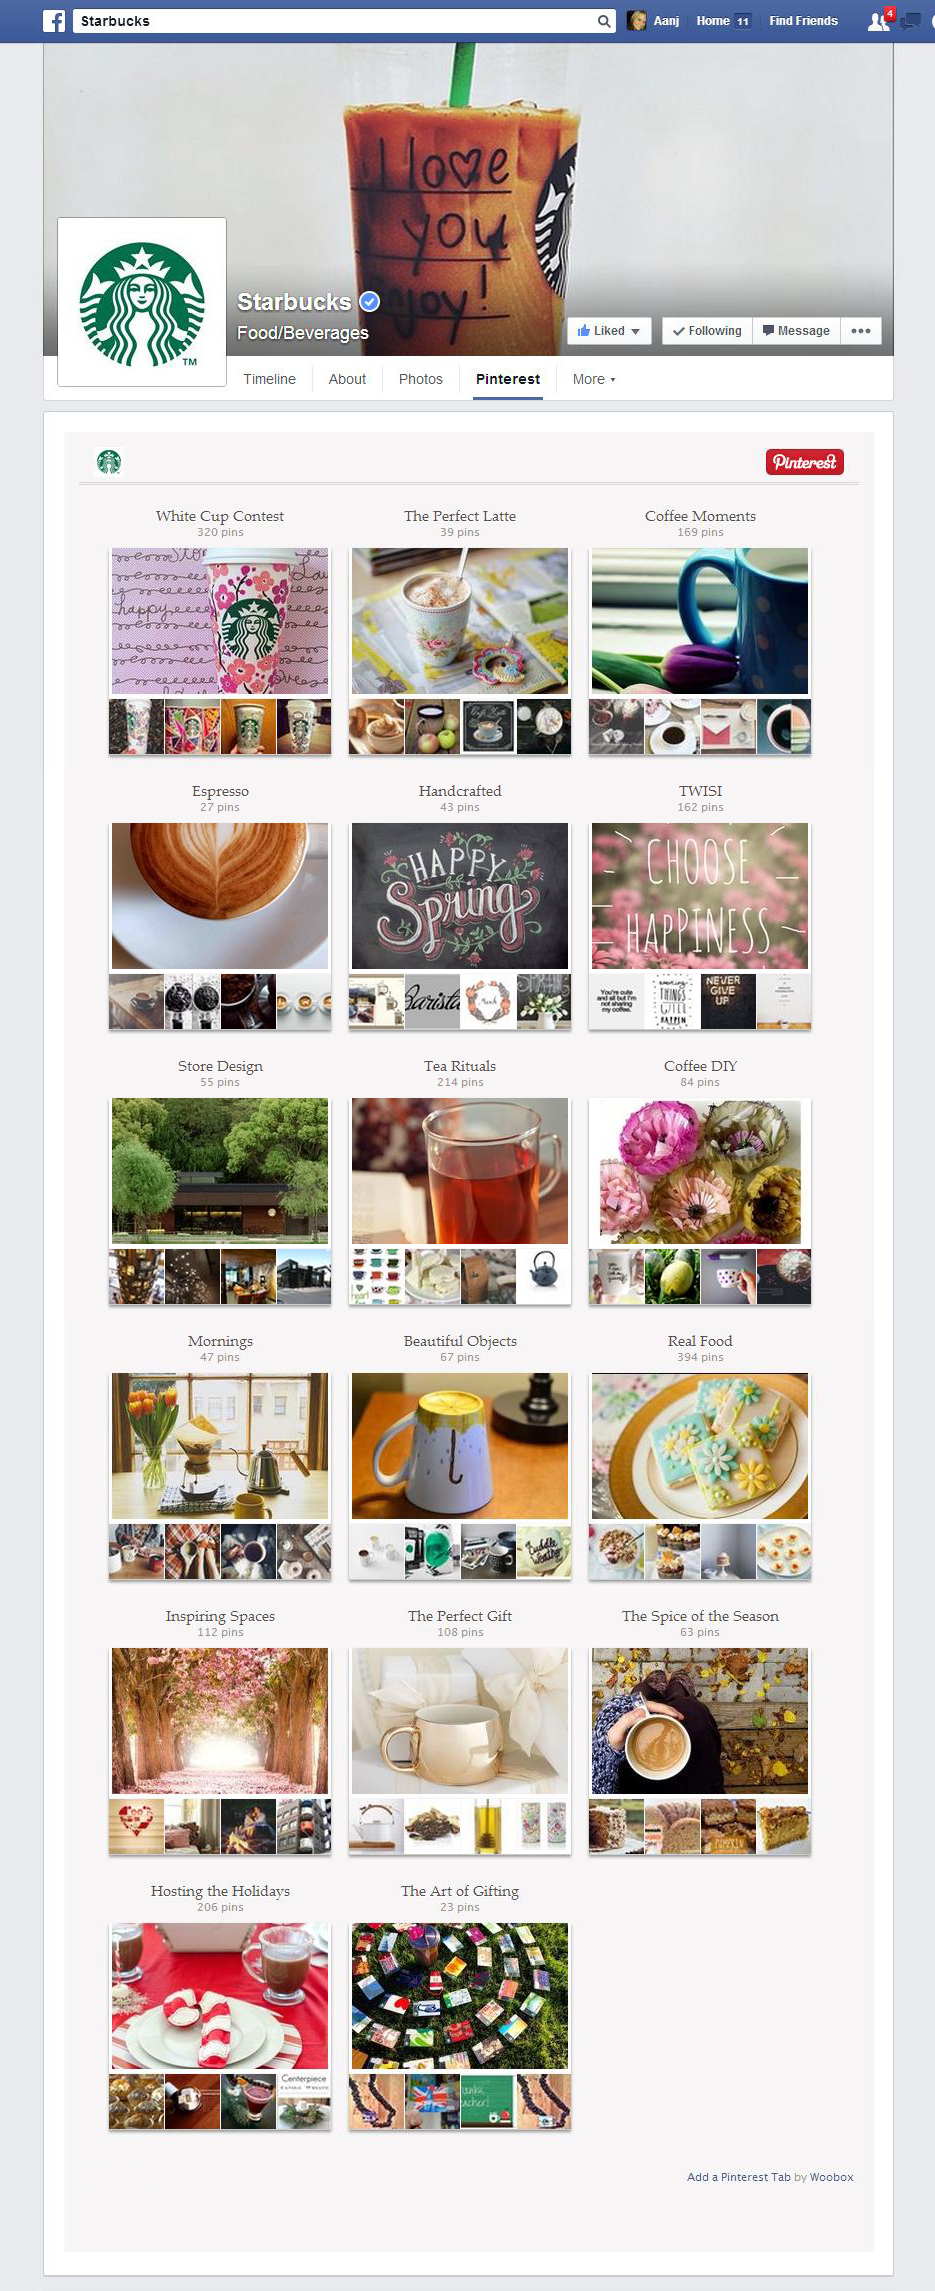 Pinterest Pages Like Example Pinterest User Boards